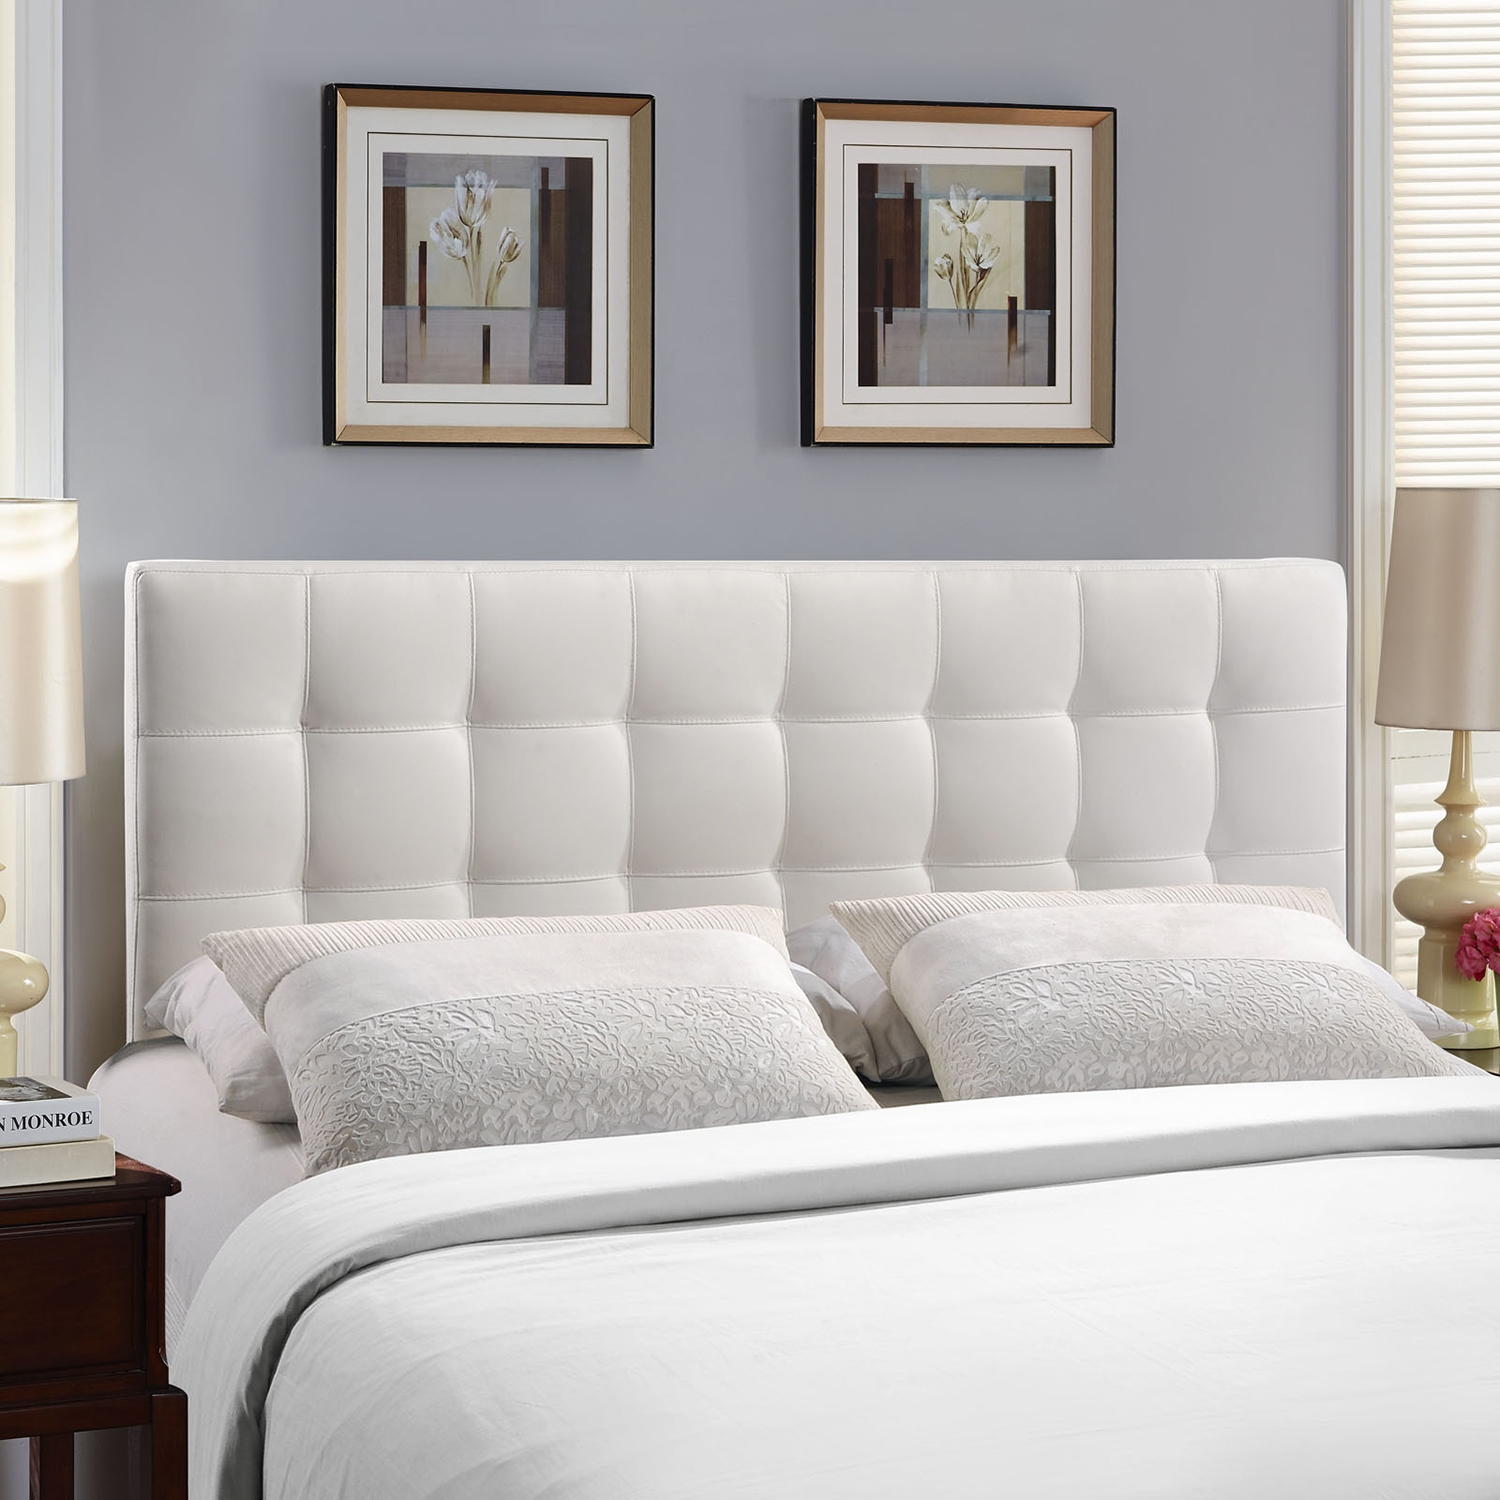 Lily Tufted Leatherette Headboard - White - EEI-MOD-51-WHI